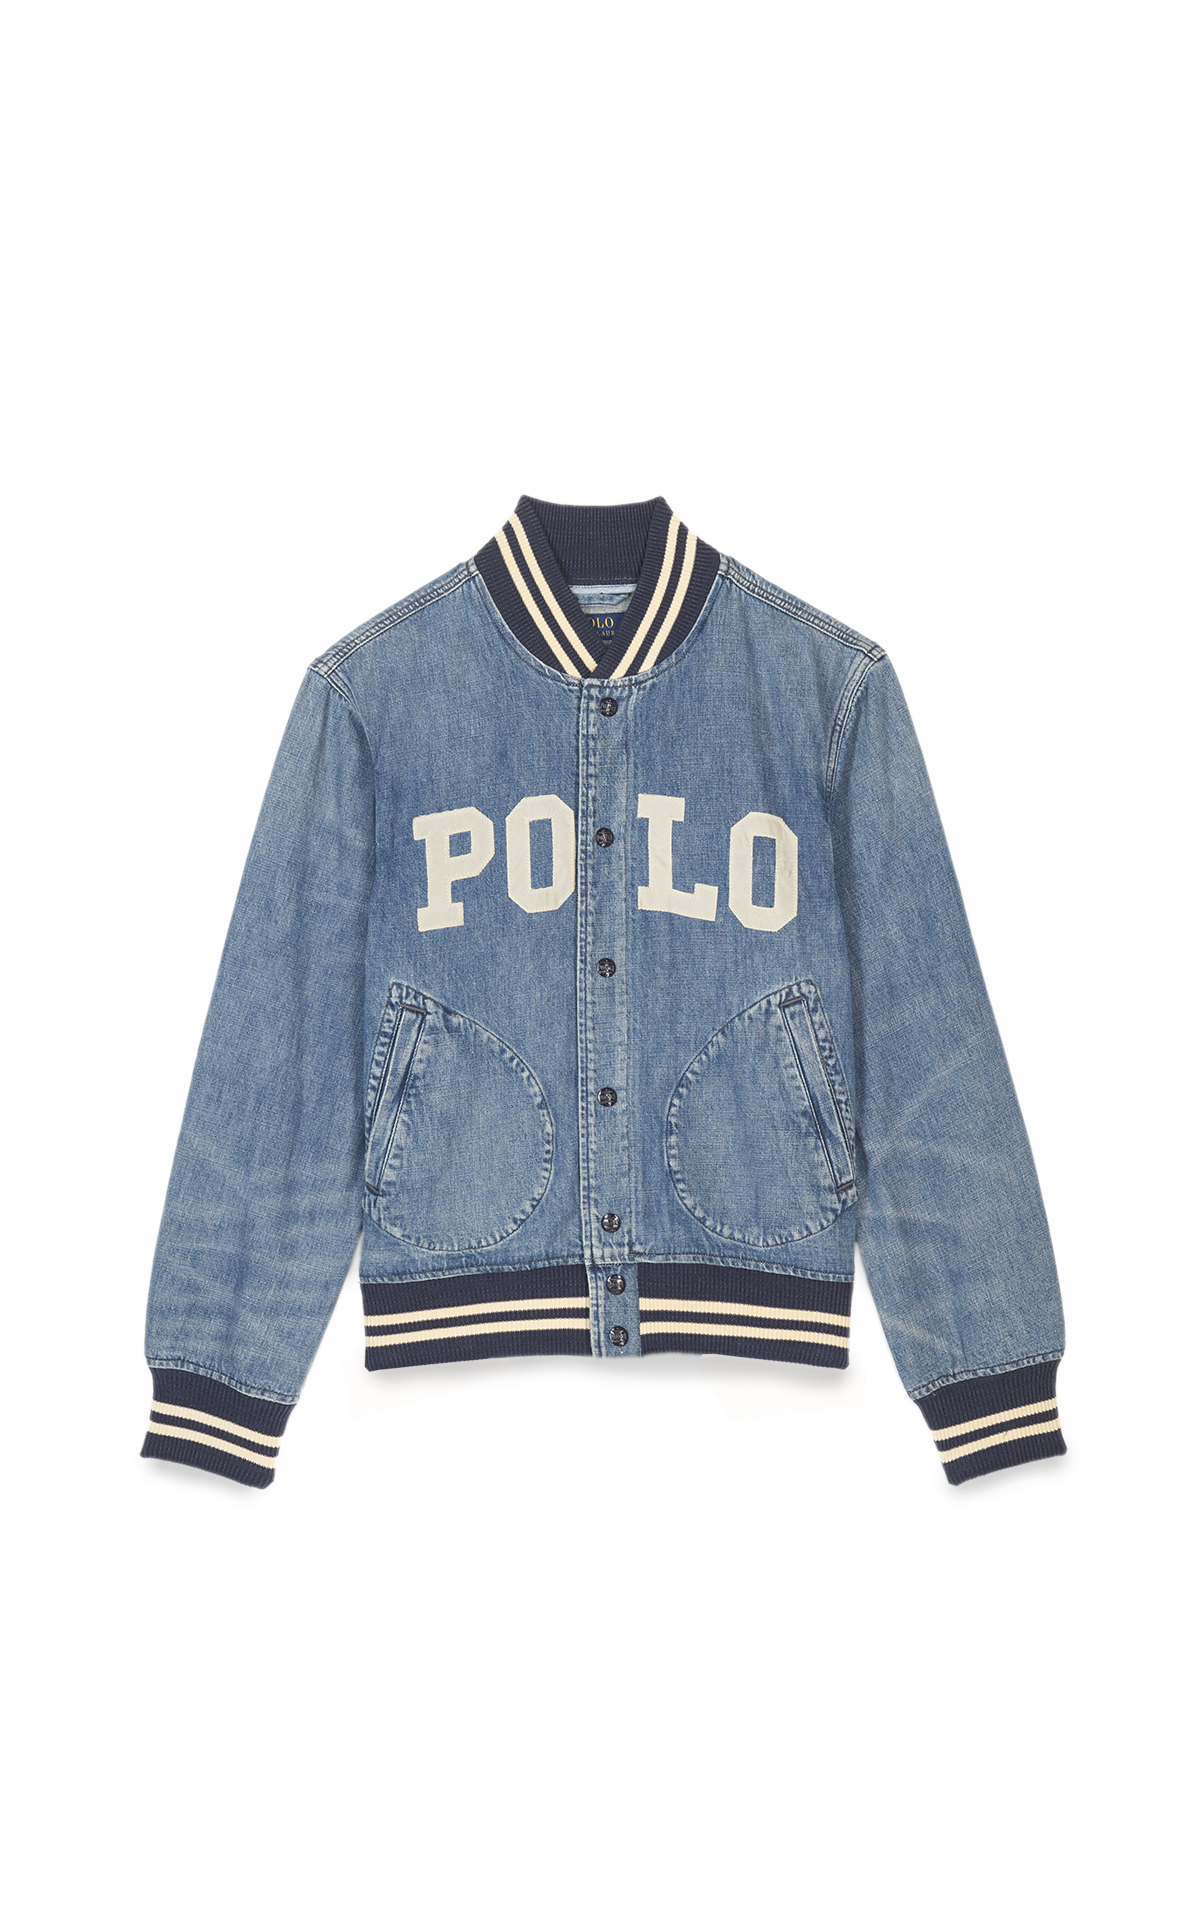 Polo Veste en denim homme*